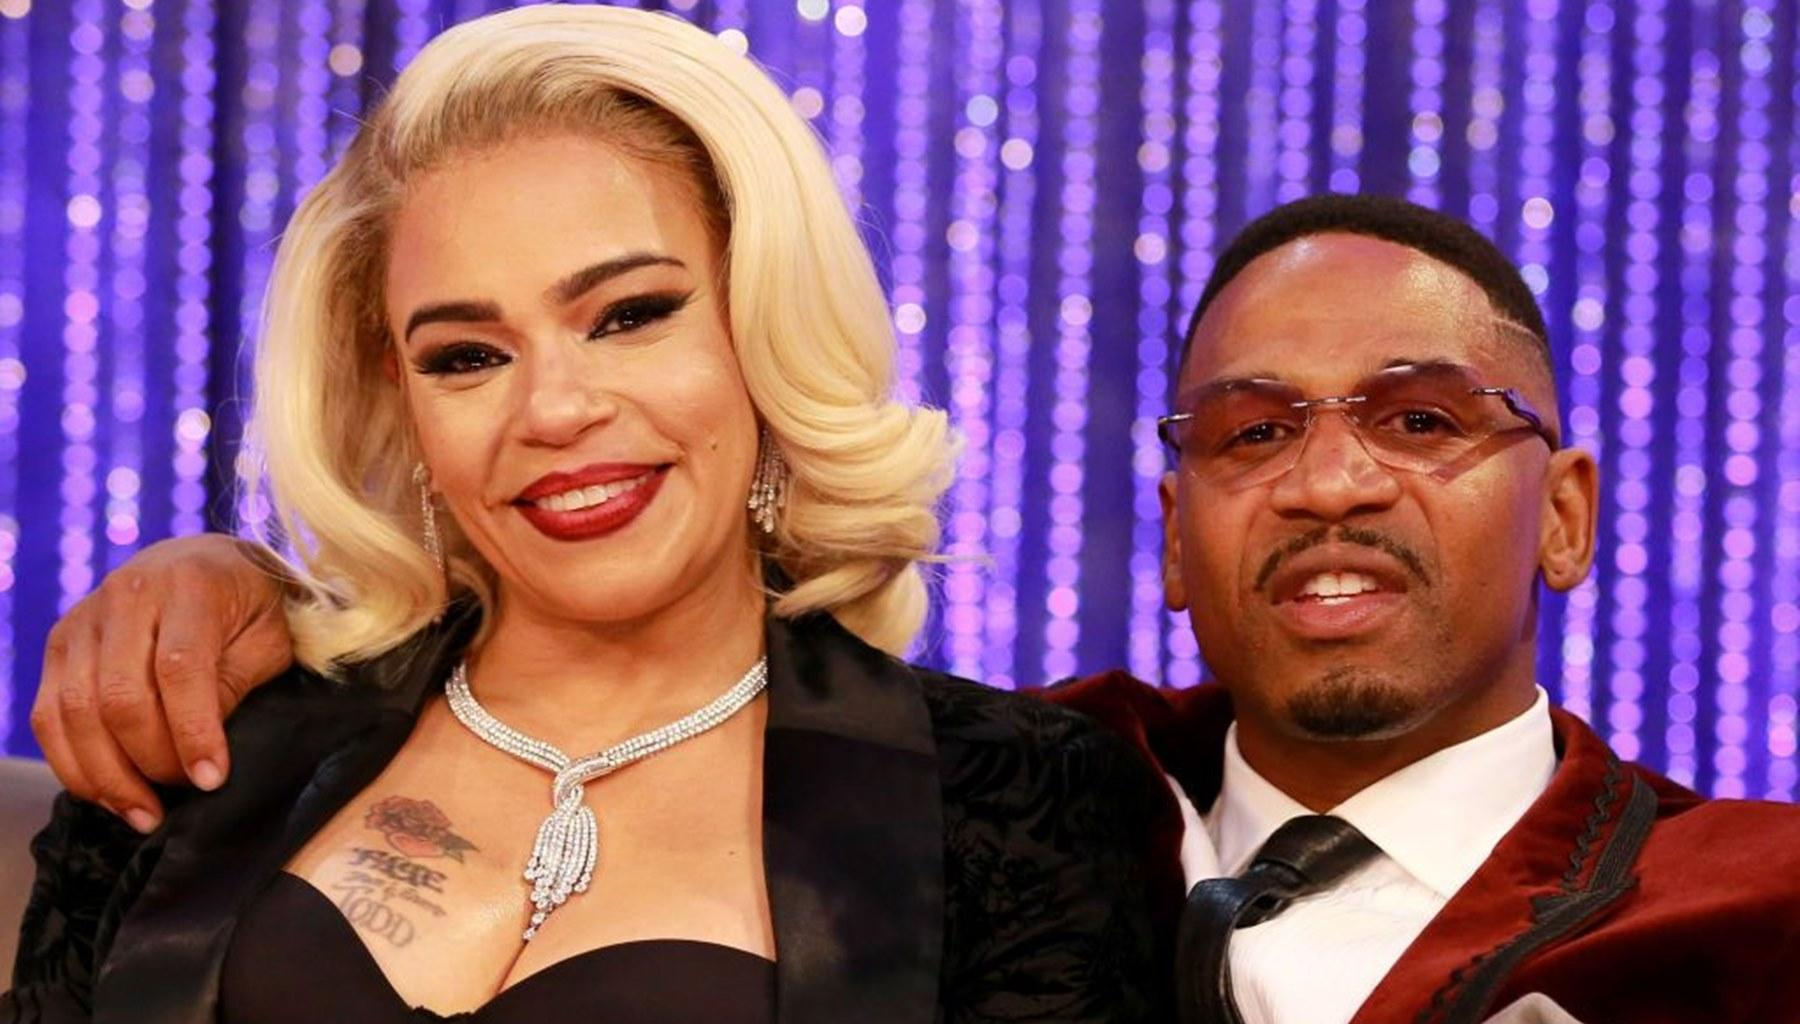 Faith Evans Is Cheating On Stevie J, According To A Hacker -- Joseline Hernandez's Baby Daddy Breaks His Silence On The Wild Accusations With Stunning Photo